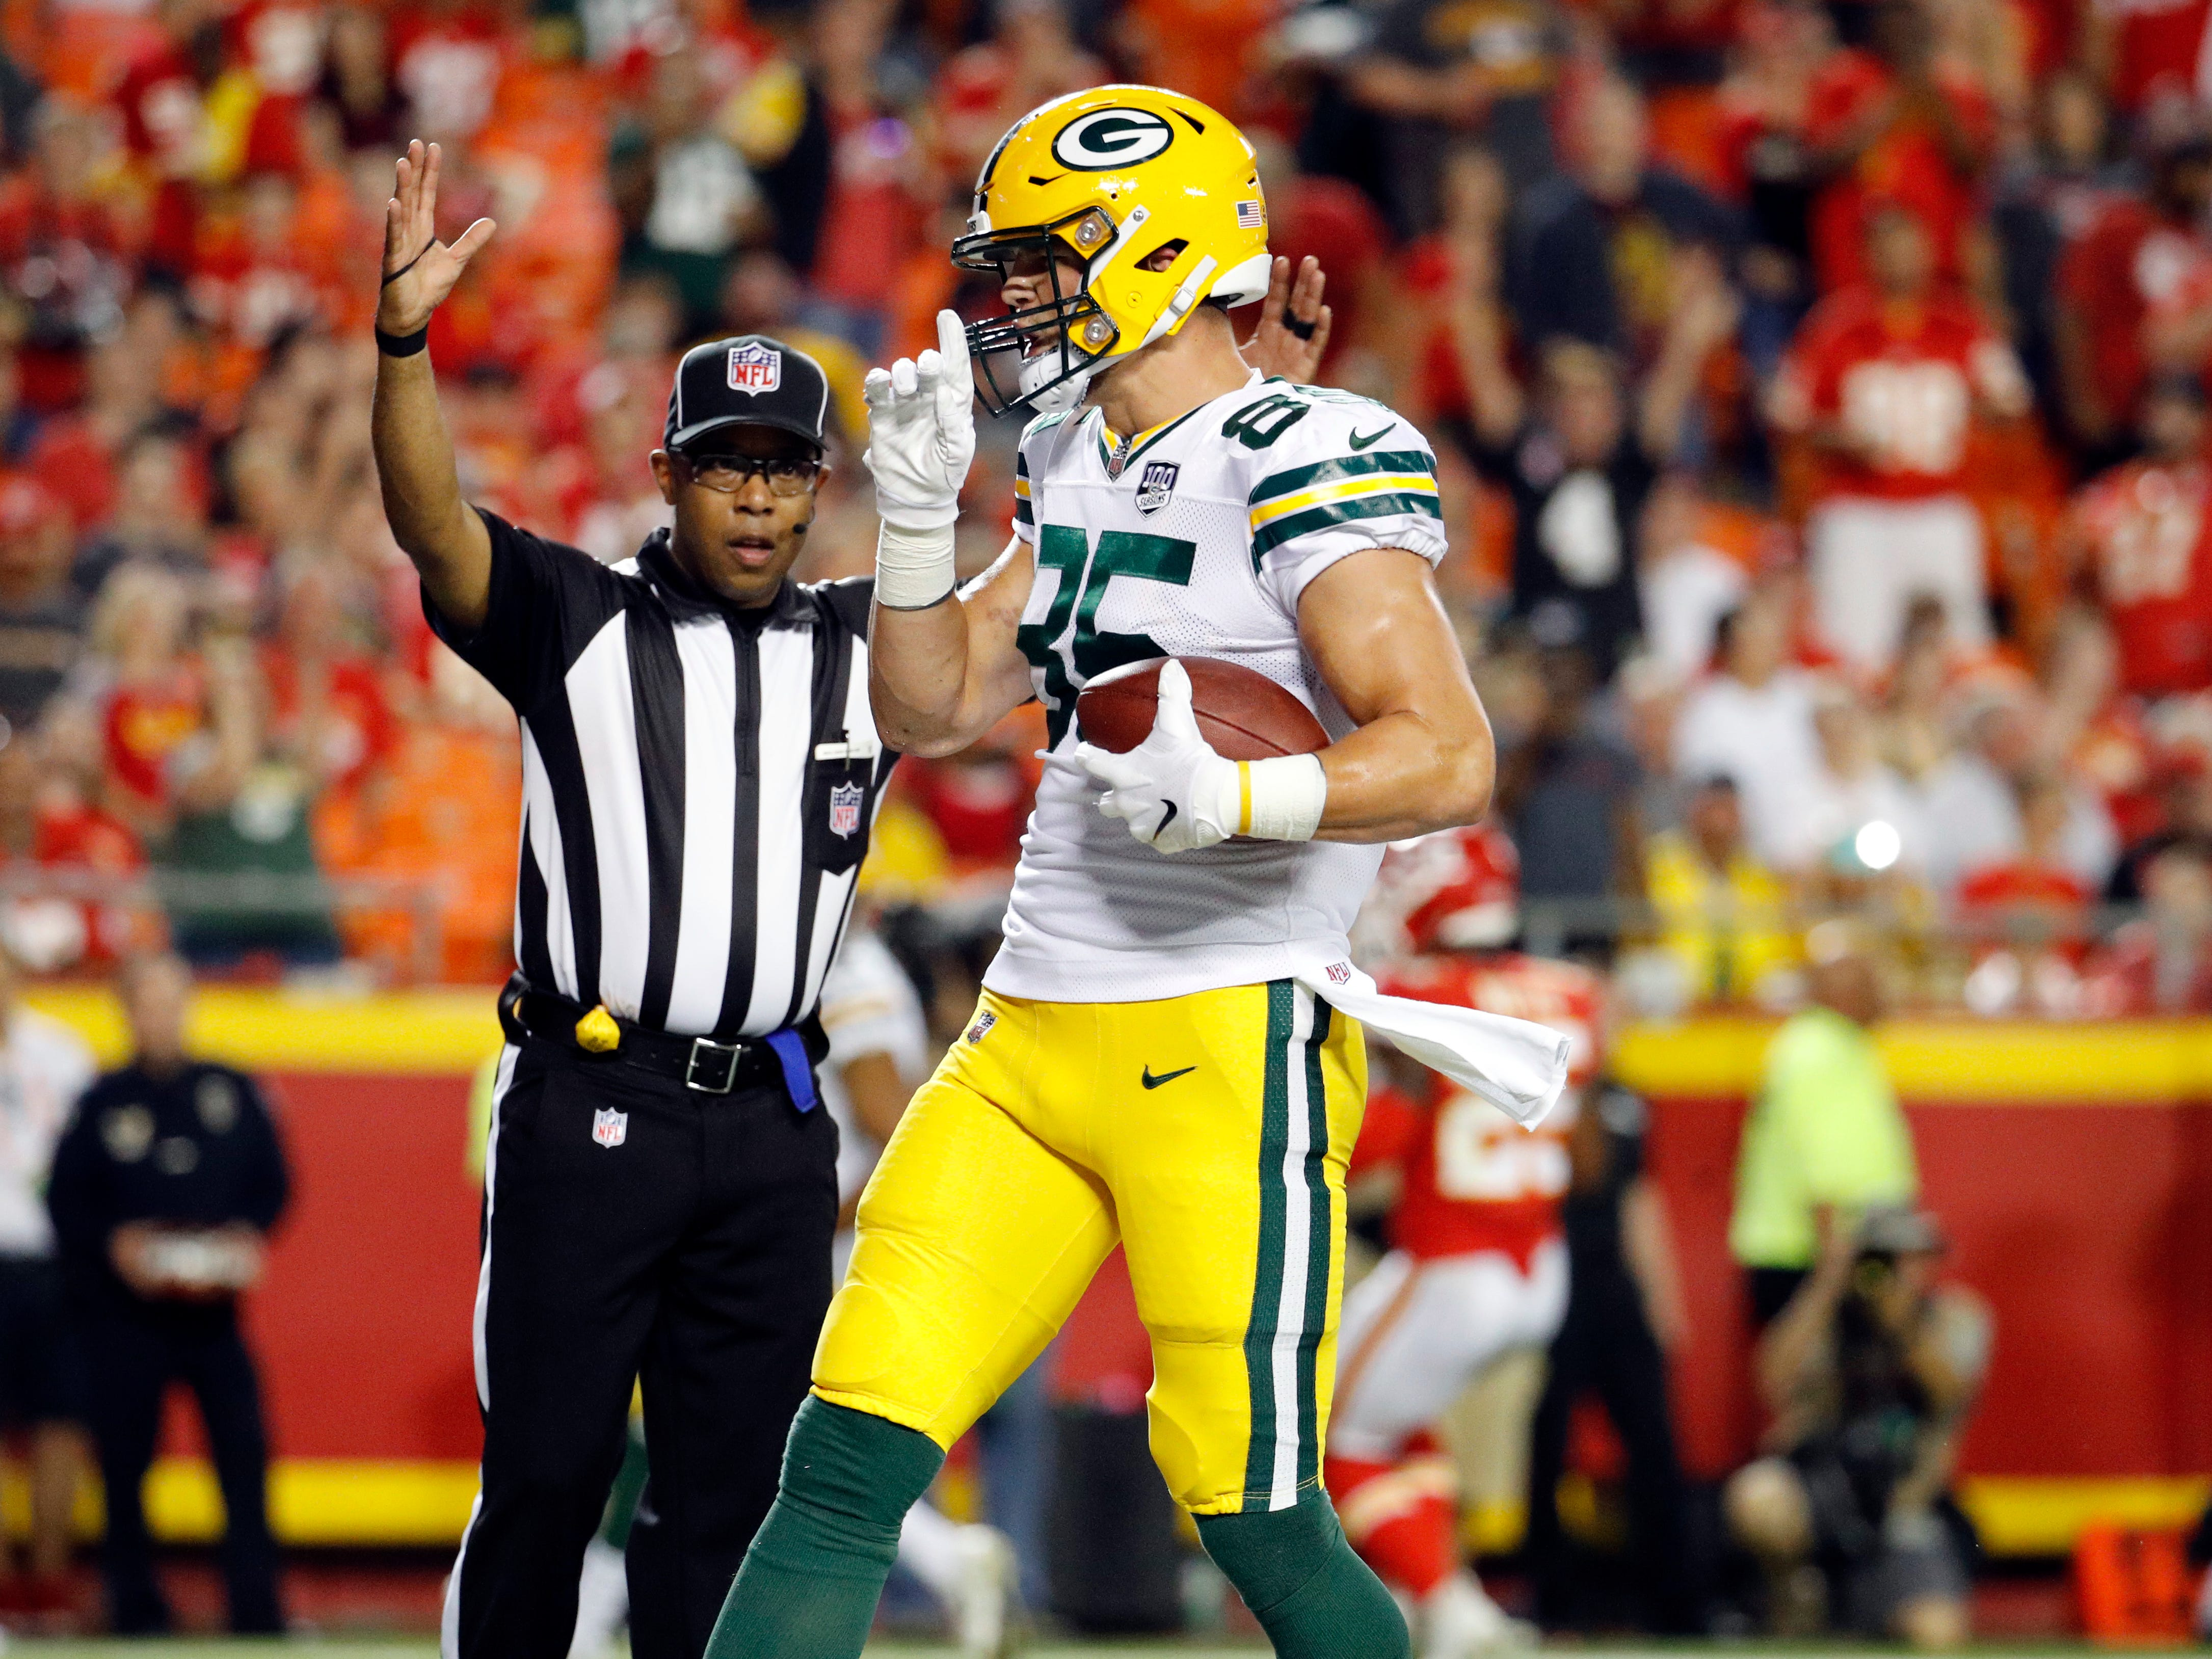 Green Bay Packers tight end Robert Tonyan (85) celebrates his touchdown during the first half of an NFL preseason football game against the Kansas City Chiefs in Kansas City, Mo., Thursday, Aug. 30, 2018.